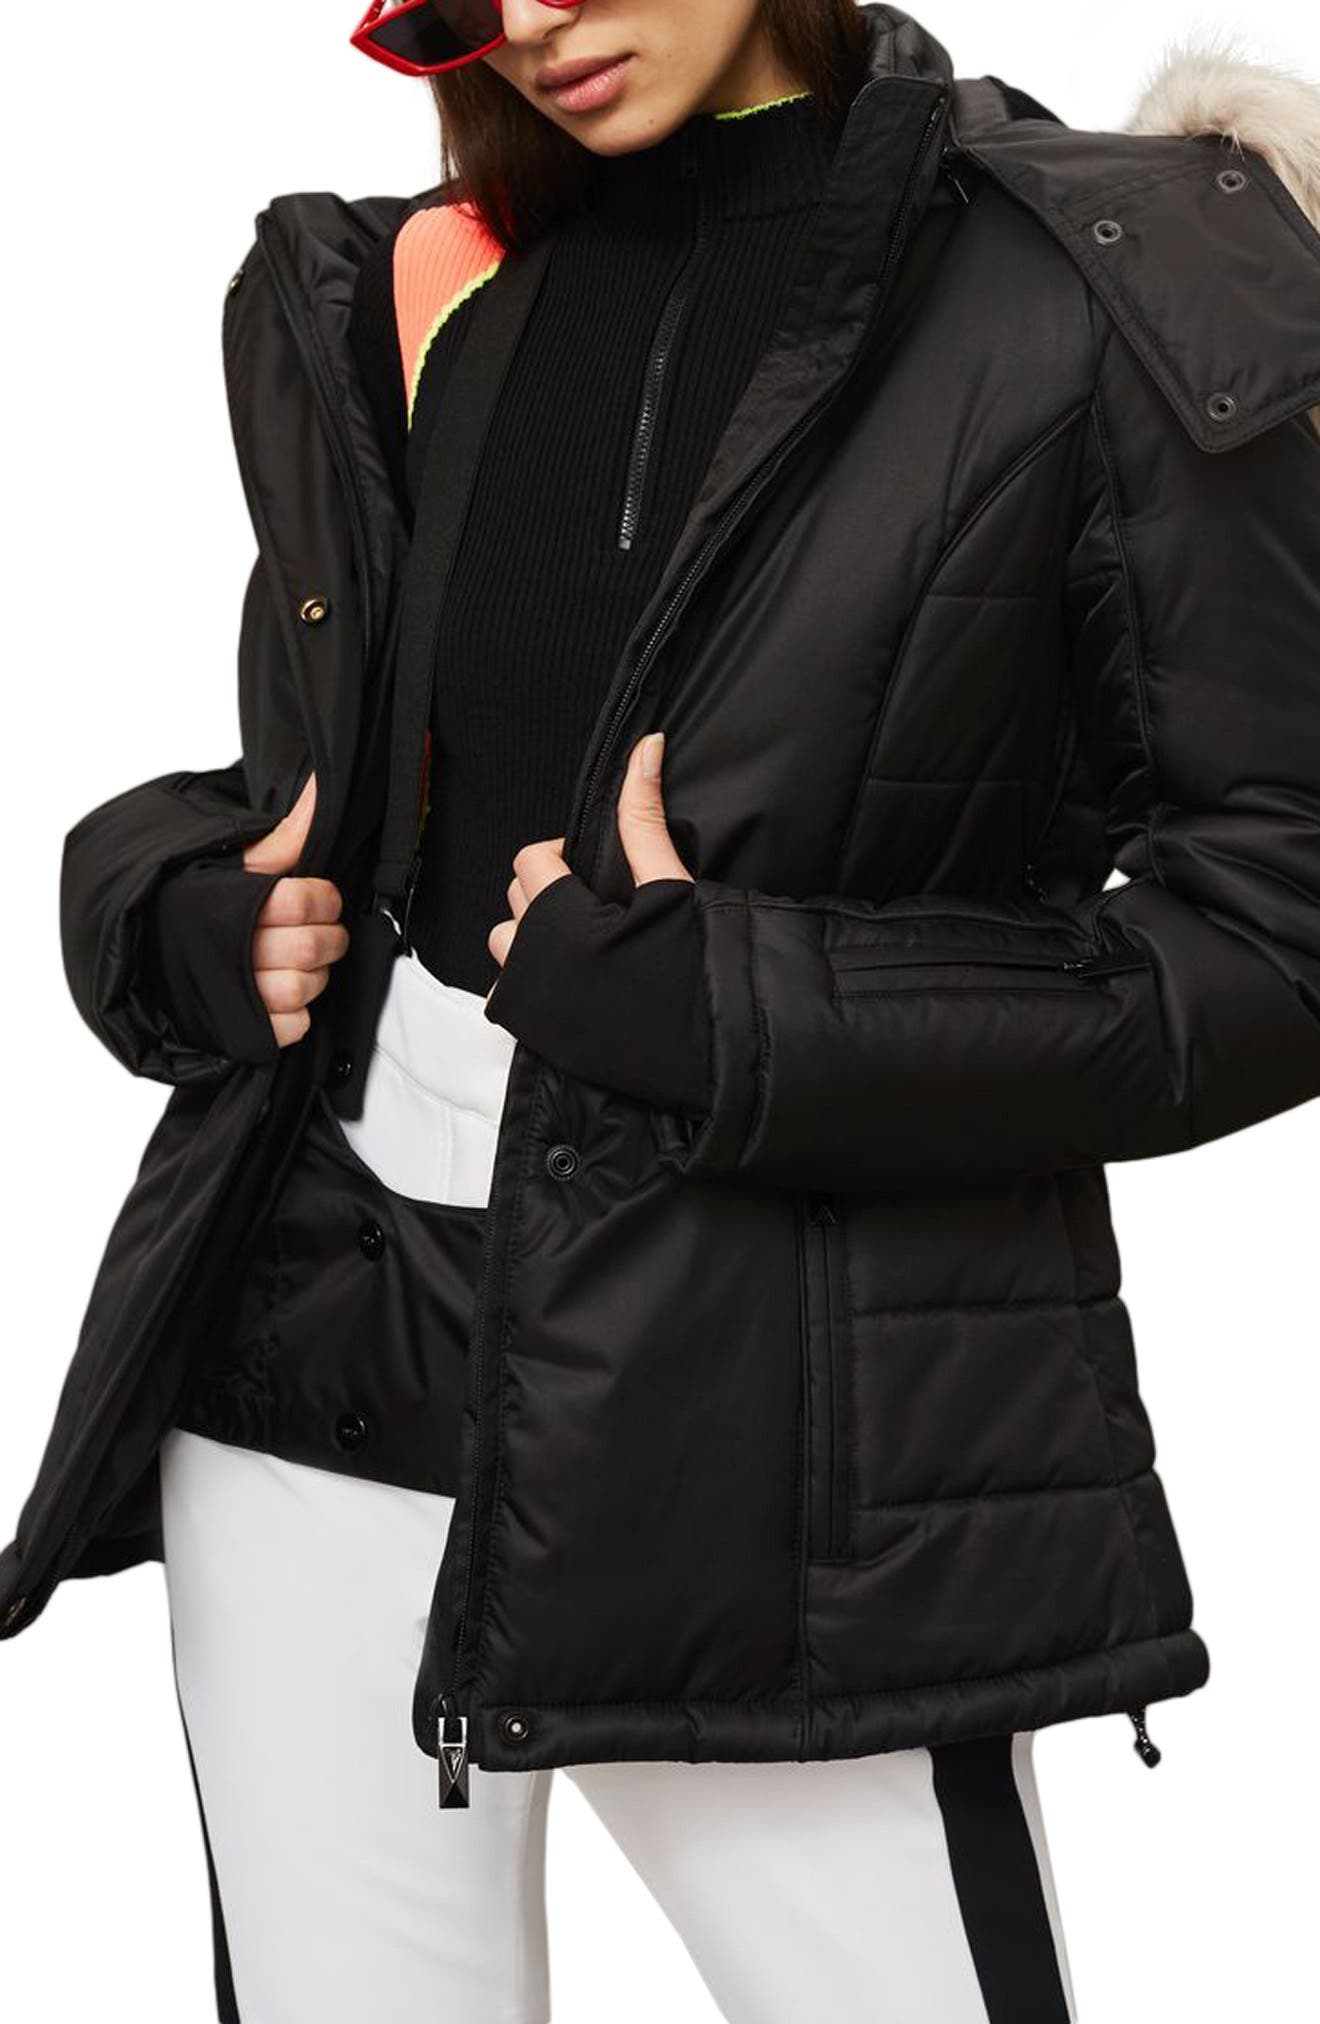 Alternate Image 1 Selected - Topshop SNO Amazon Puffer Jacket